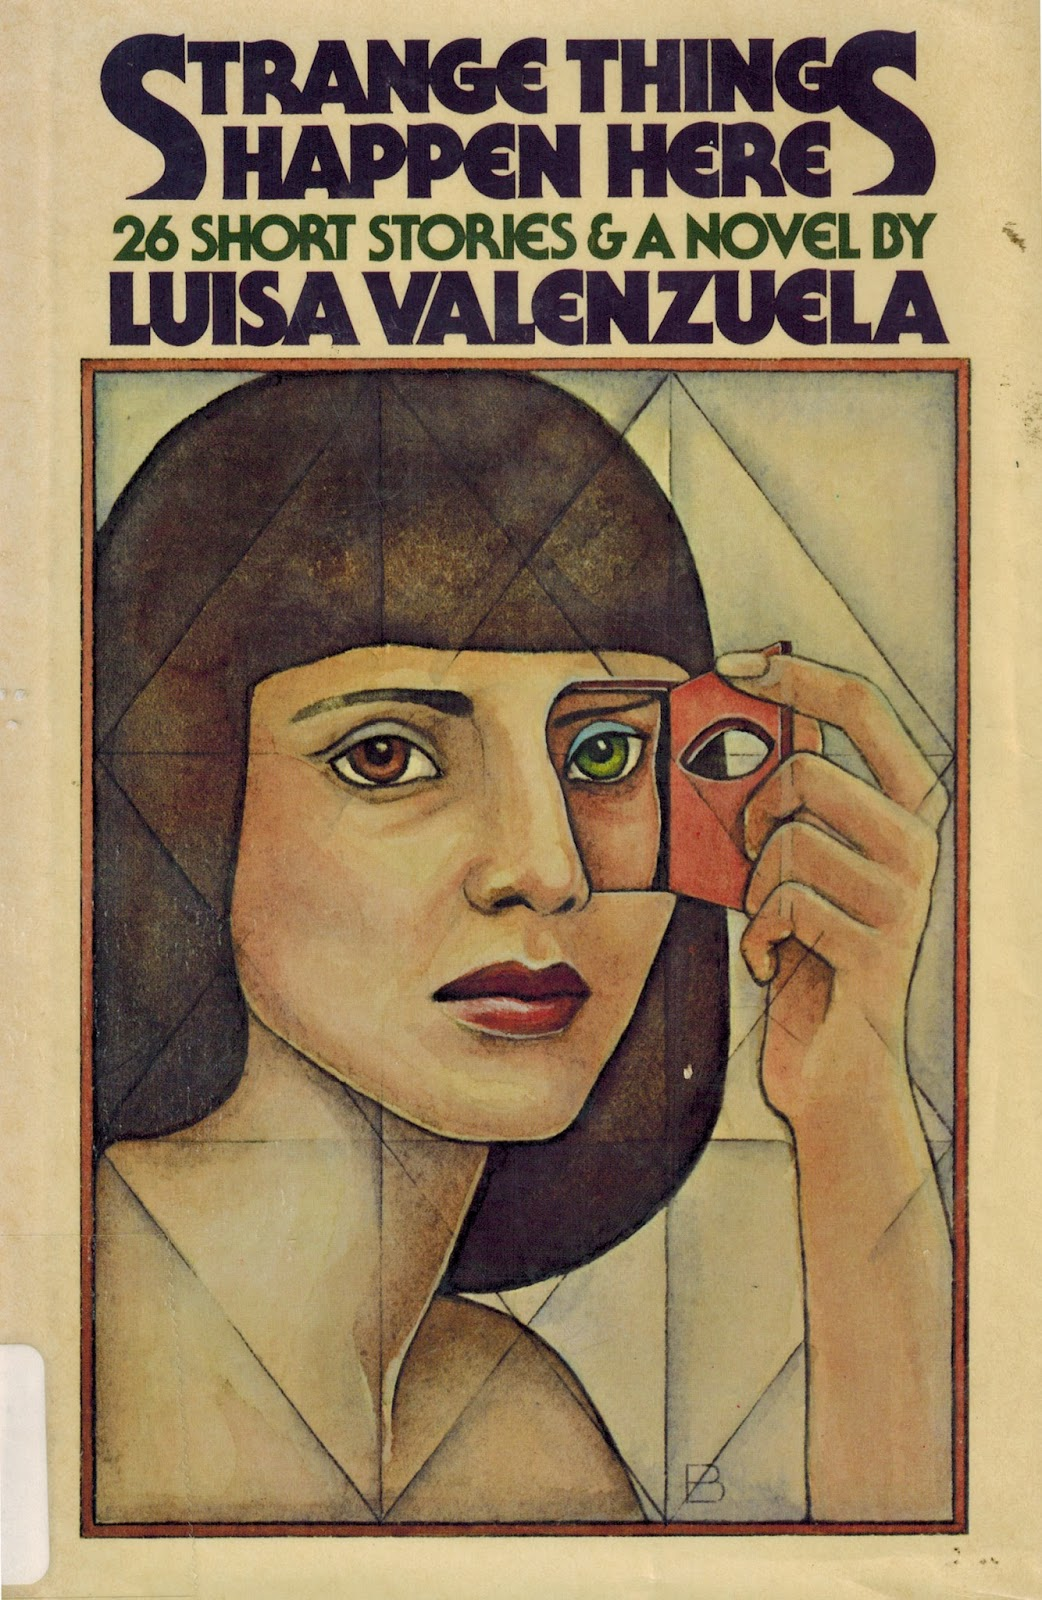 censors luisa valenzuela Looking at the word noble noble - honorable an exalted moral or mental character or excellence an admirably high quality notably superior the censors mission was to intercept letters, analyze them, and.